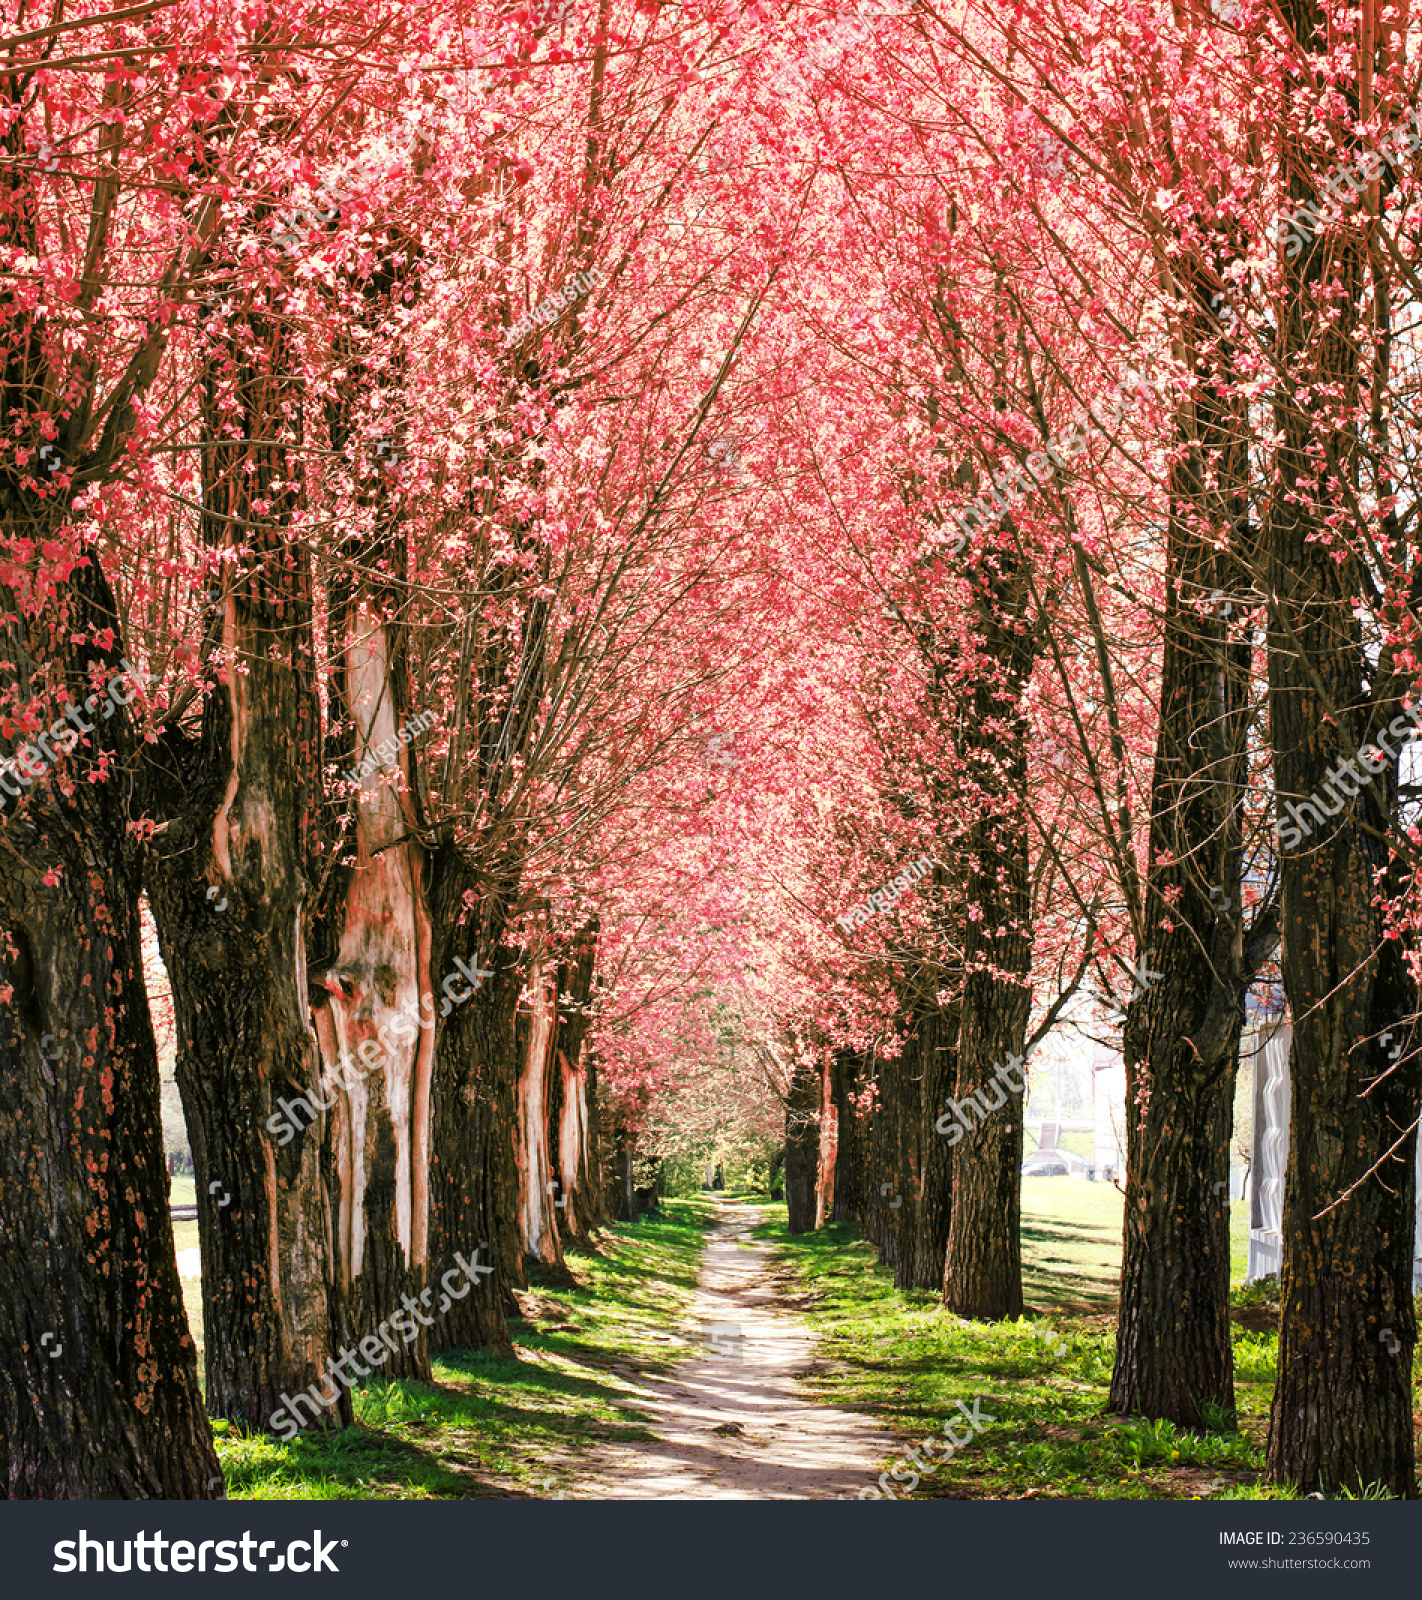 pink spring trees wallpaper - photo #44